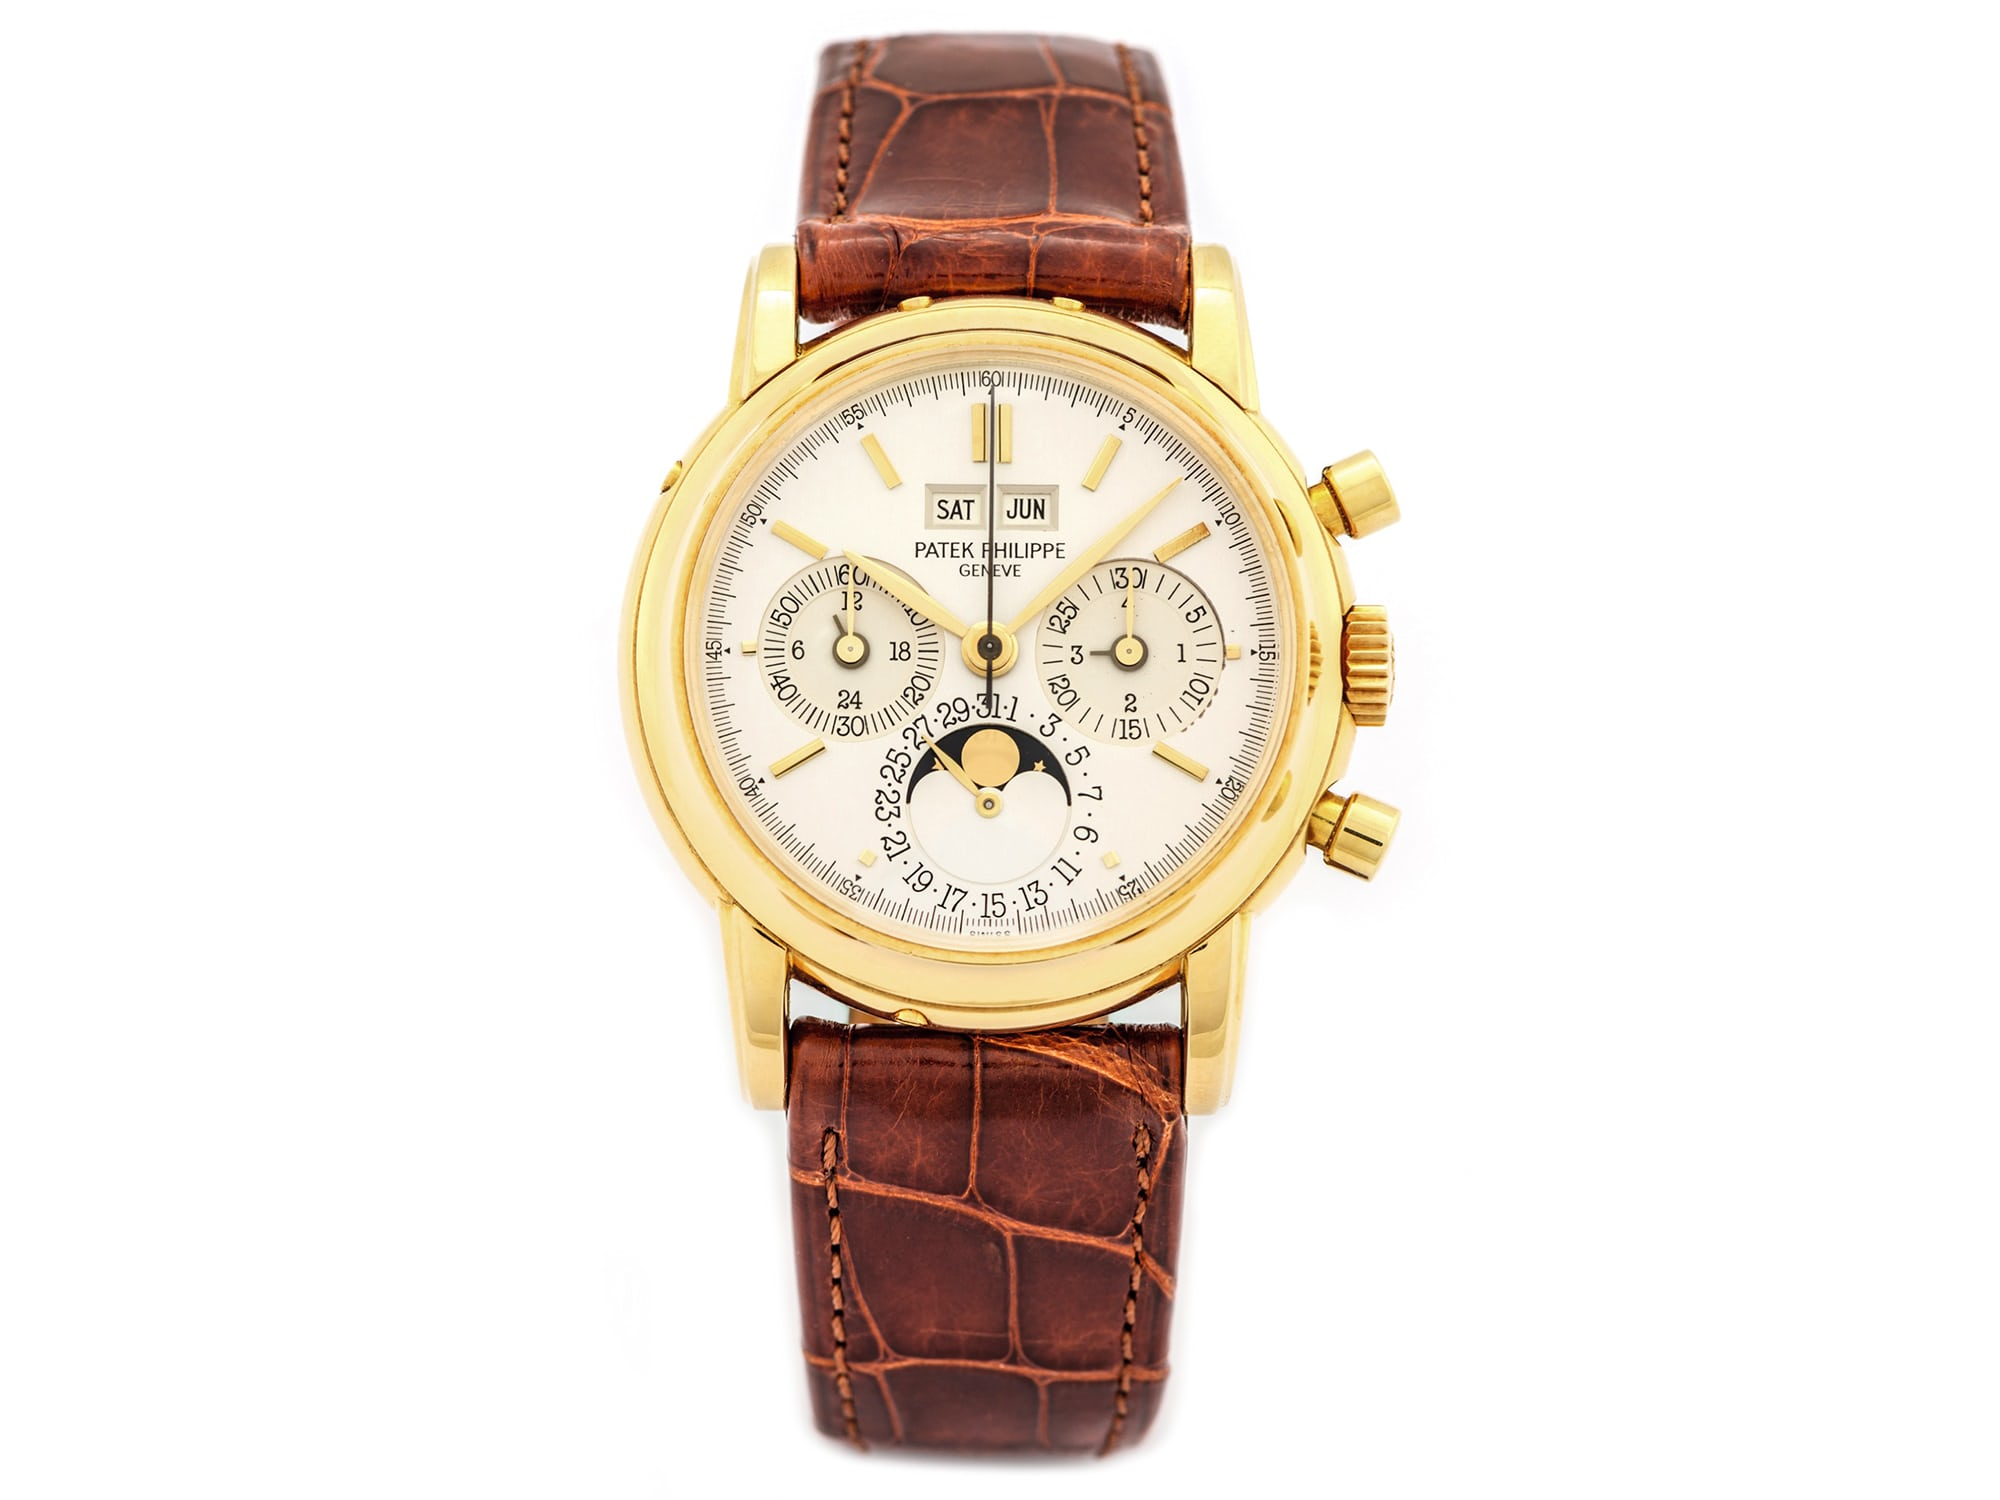 72b47755c50 in-depth  why you should care about the patek philippe reference 3970 In-